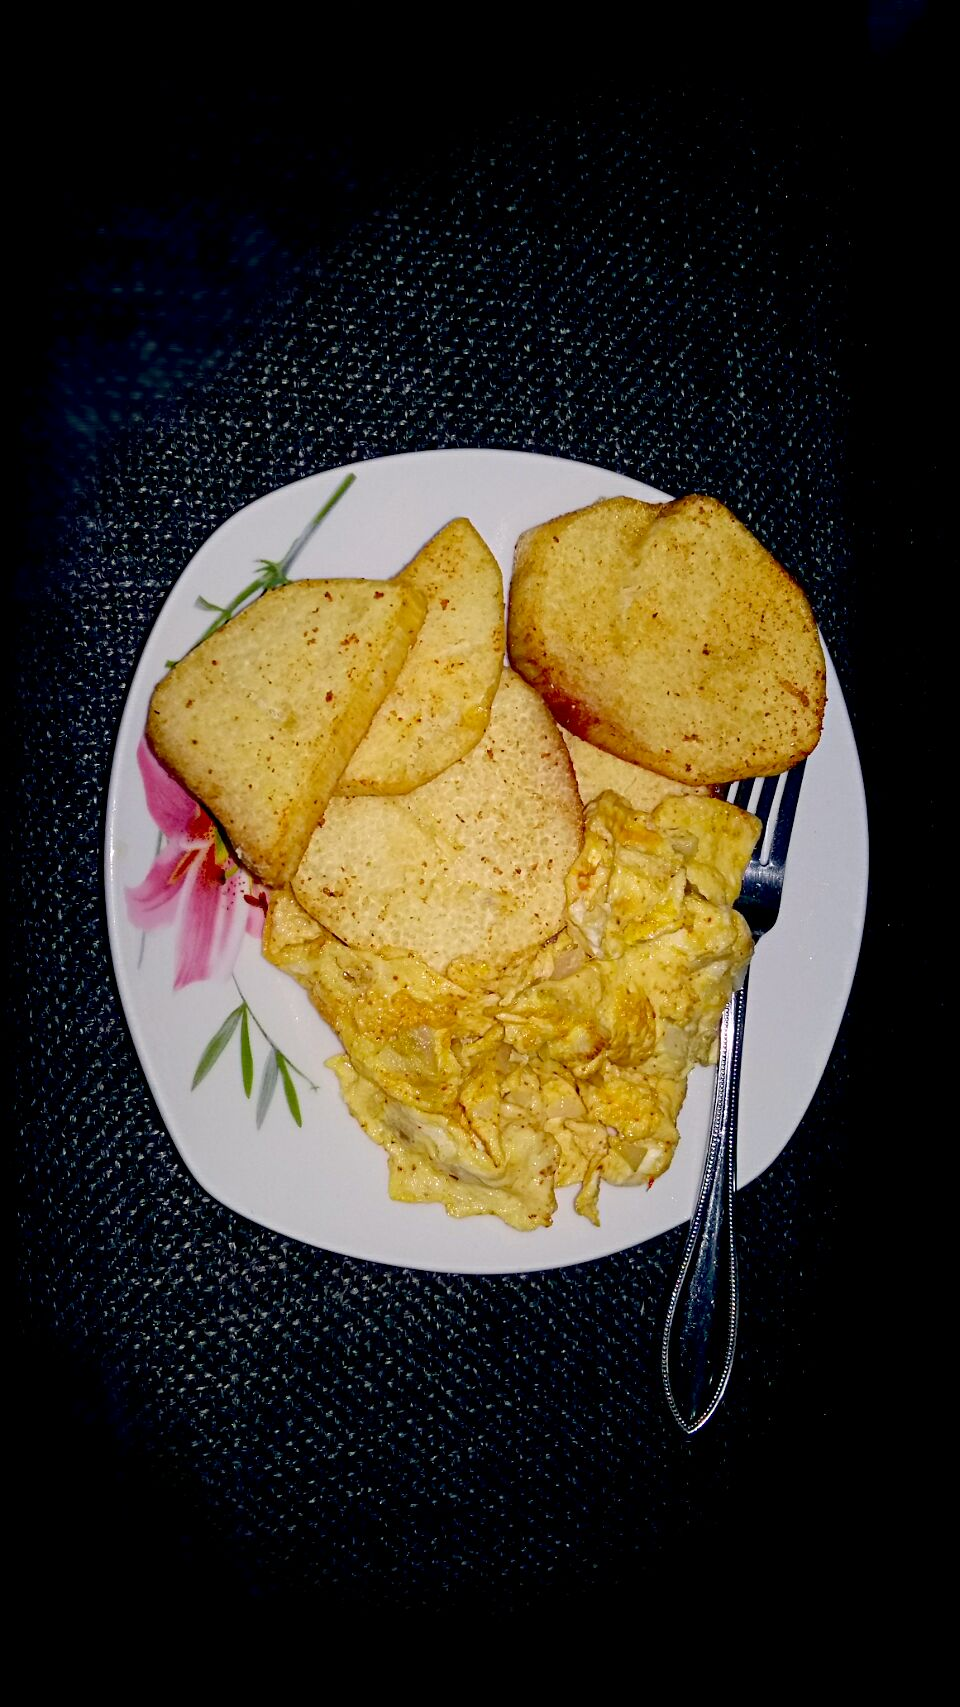 fried yam and eggs #foodie